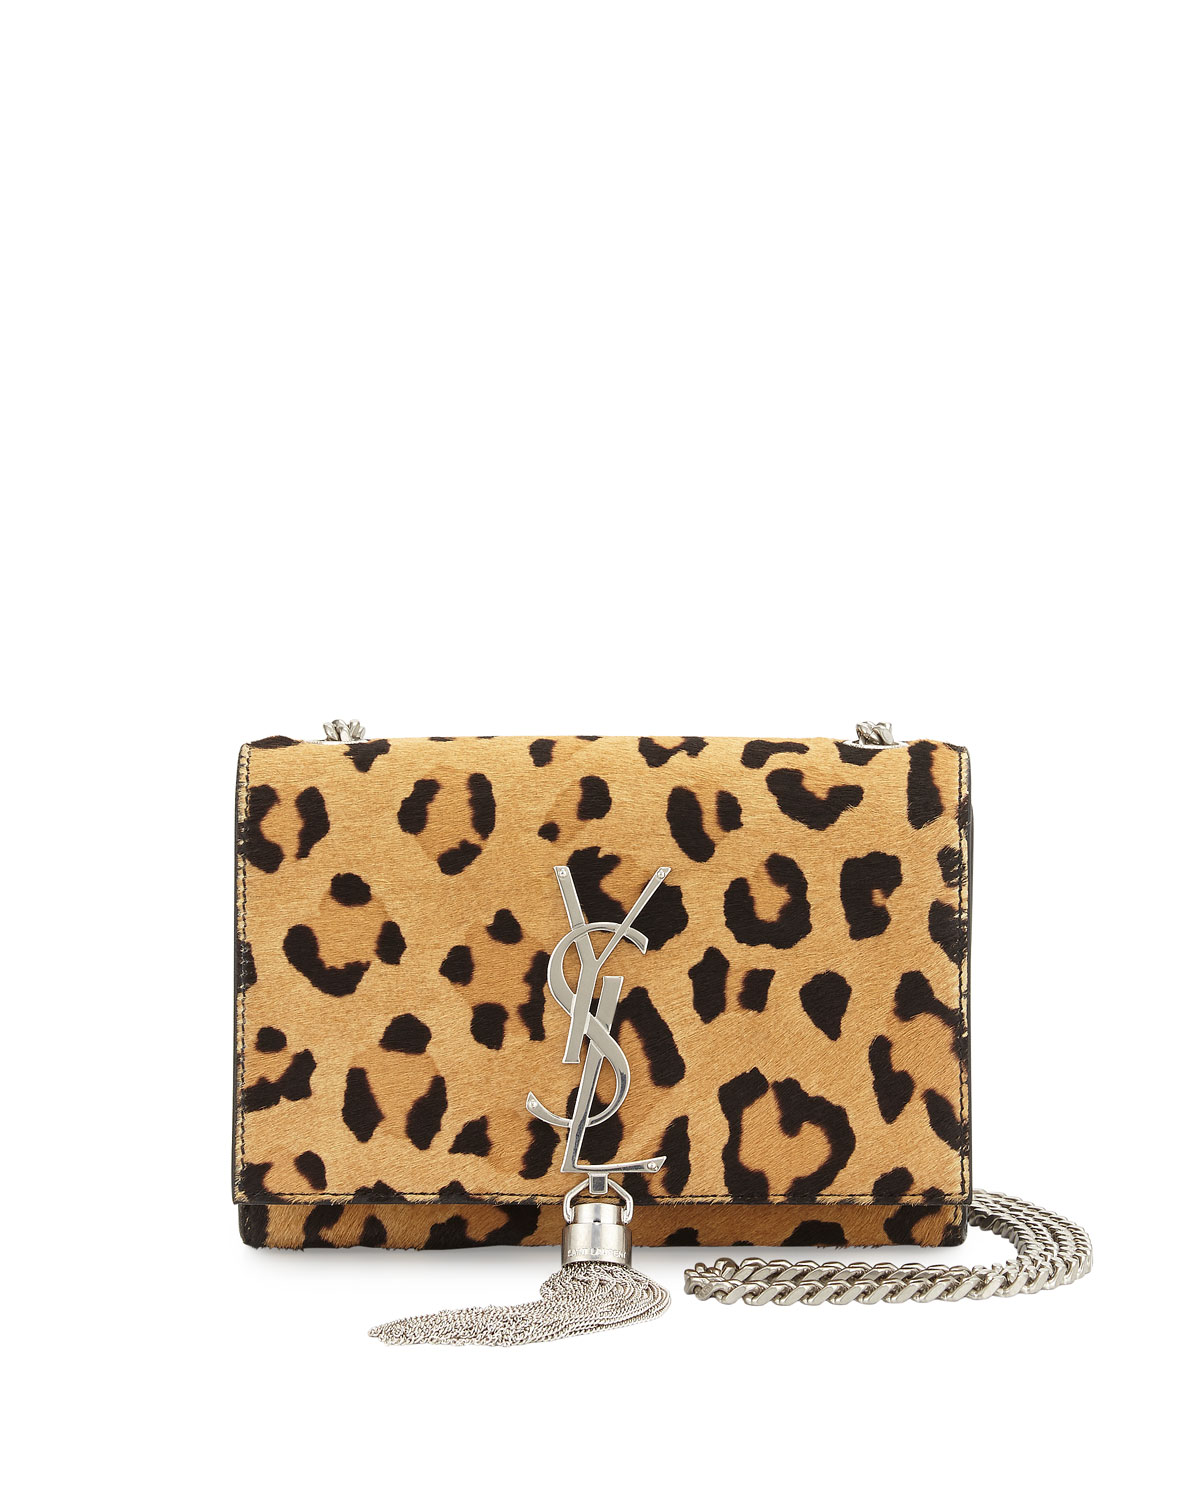 Saint Laurent Monogram Small Leopard Print Calf Hair